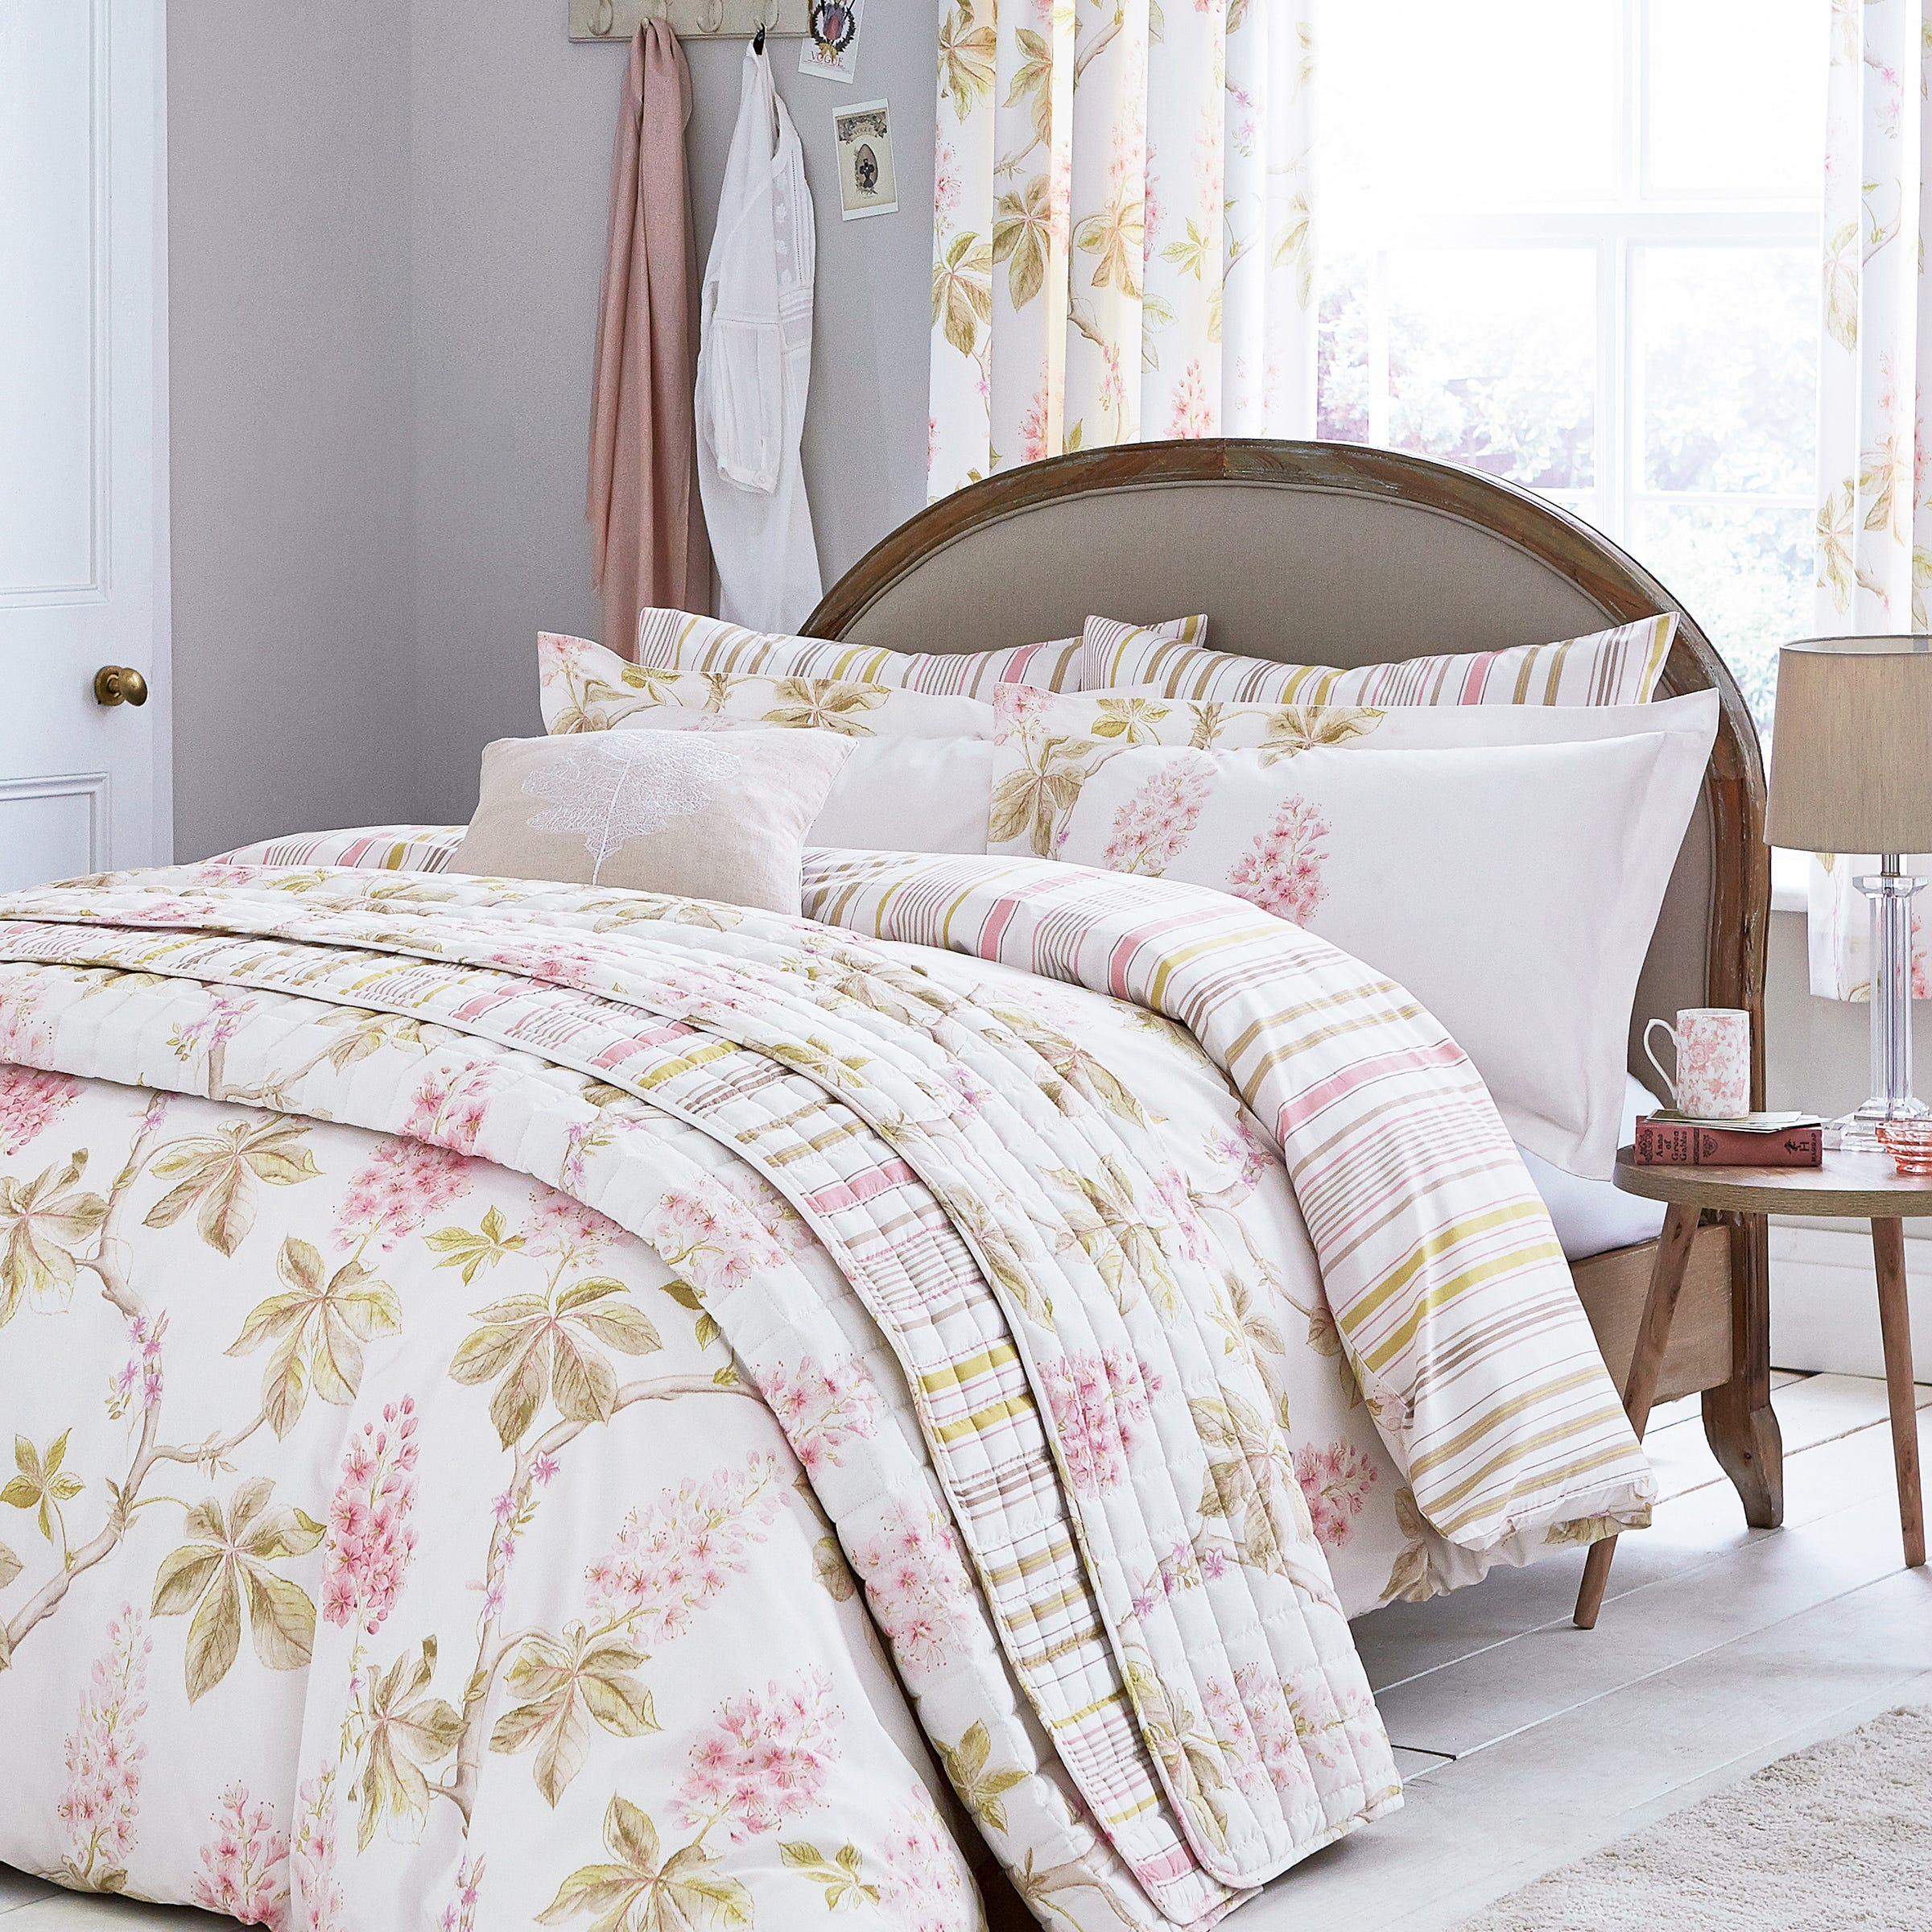 Duvet Cover Double Shop For Cheap Home Textiles And Save